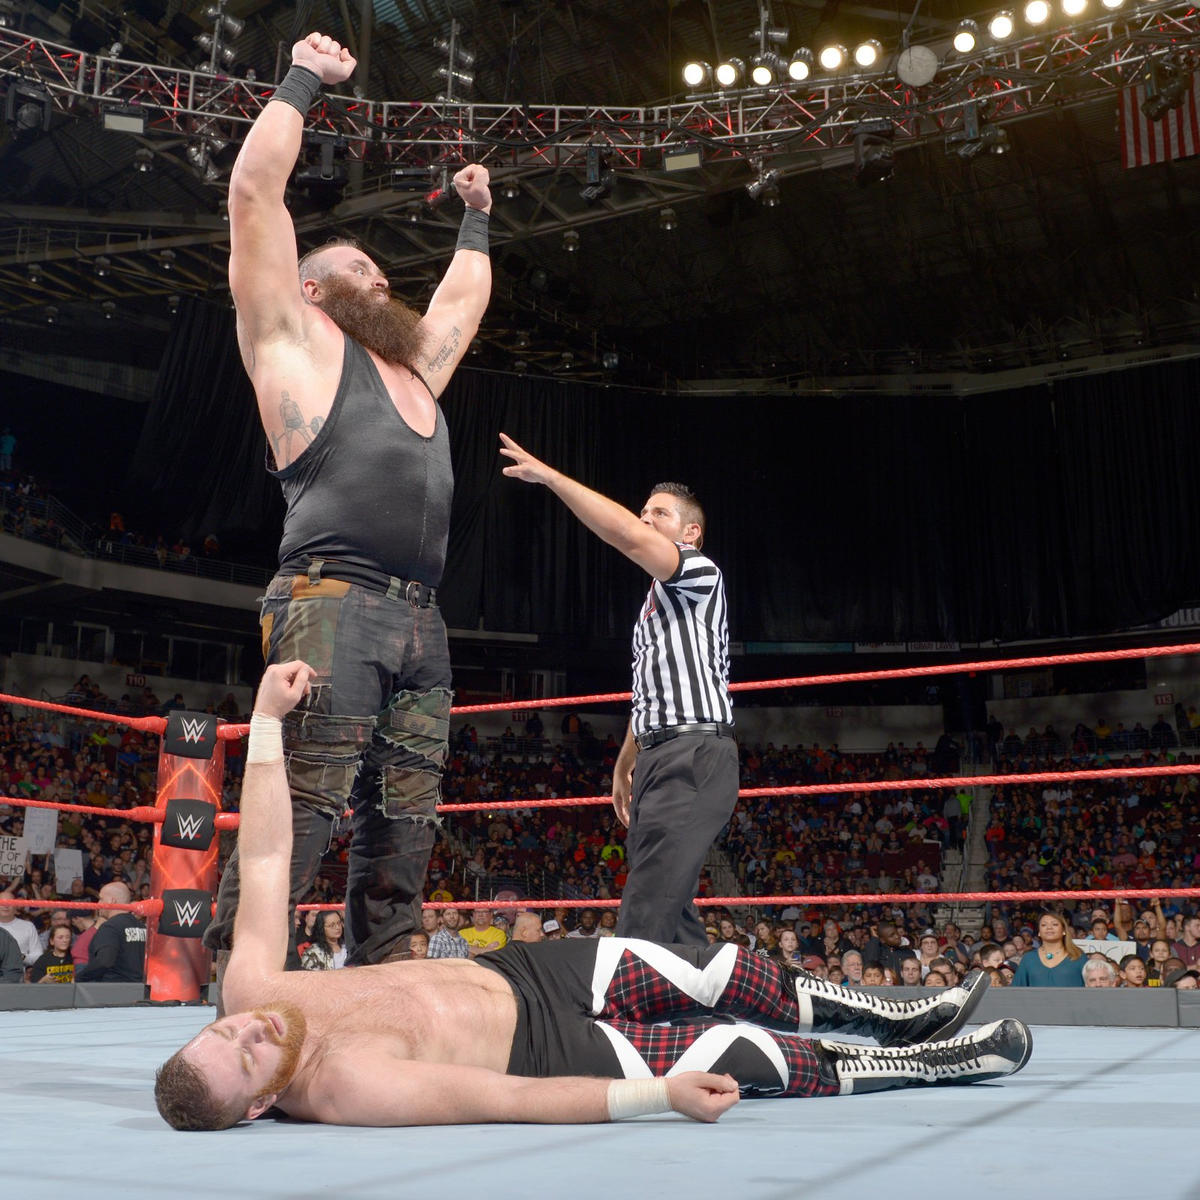 But Strowman scores the win by powerslamming Zayn.